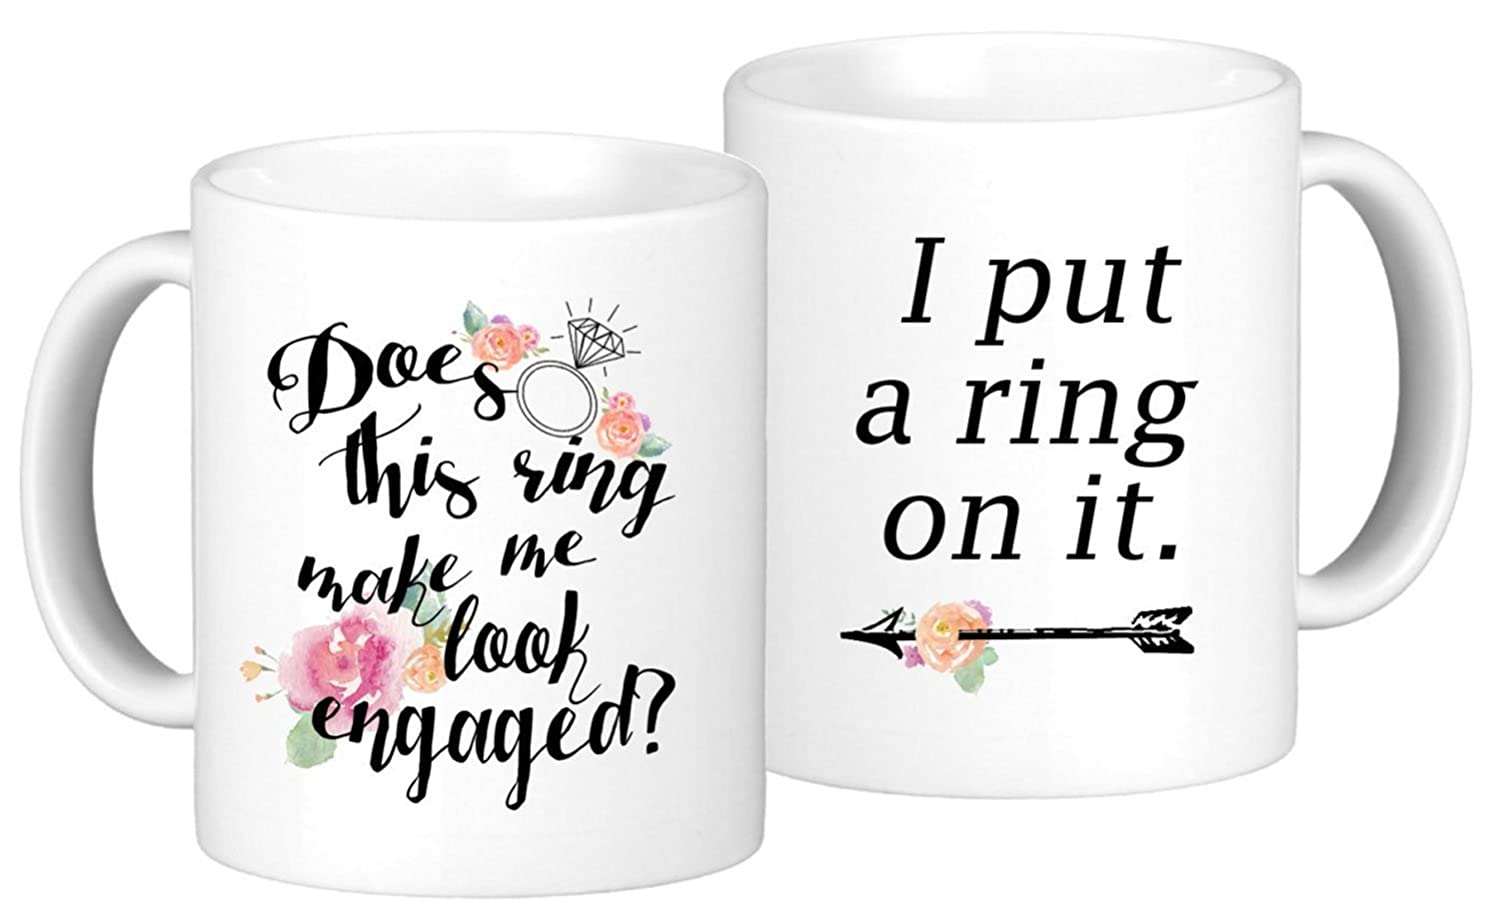 """Engagement Coffee Mug Set""""Does this ring make me look engaged?"""" and""""I put a ring on it"""" 2 11oz Mugs In White Gift Boxes (SET) Fiance Gifts For Her Valentines Day Present Bride To Be Mug"""